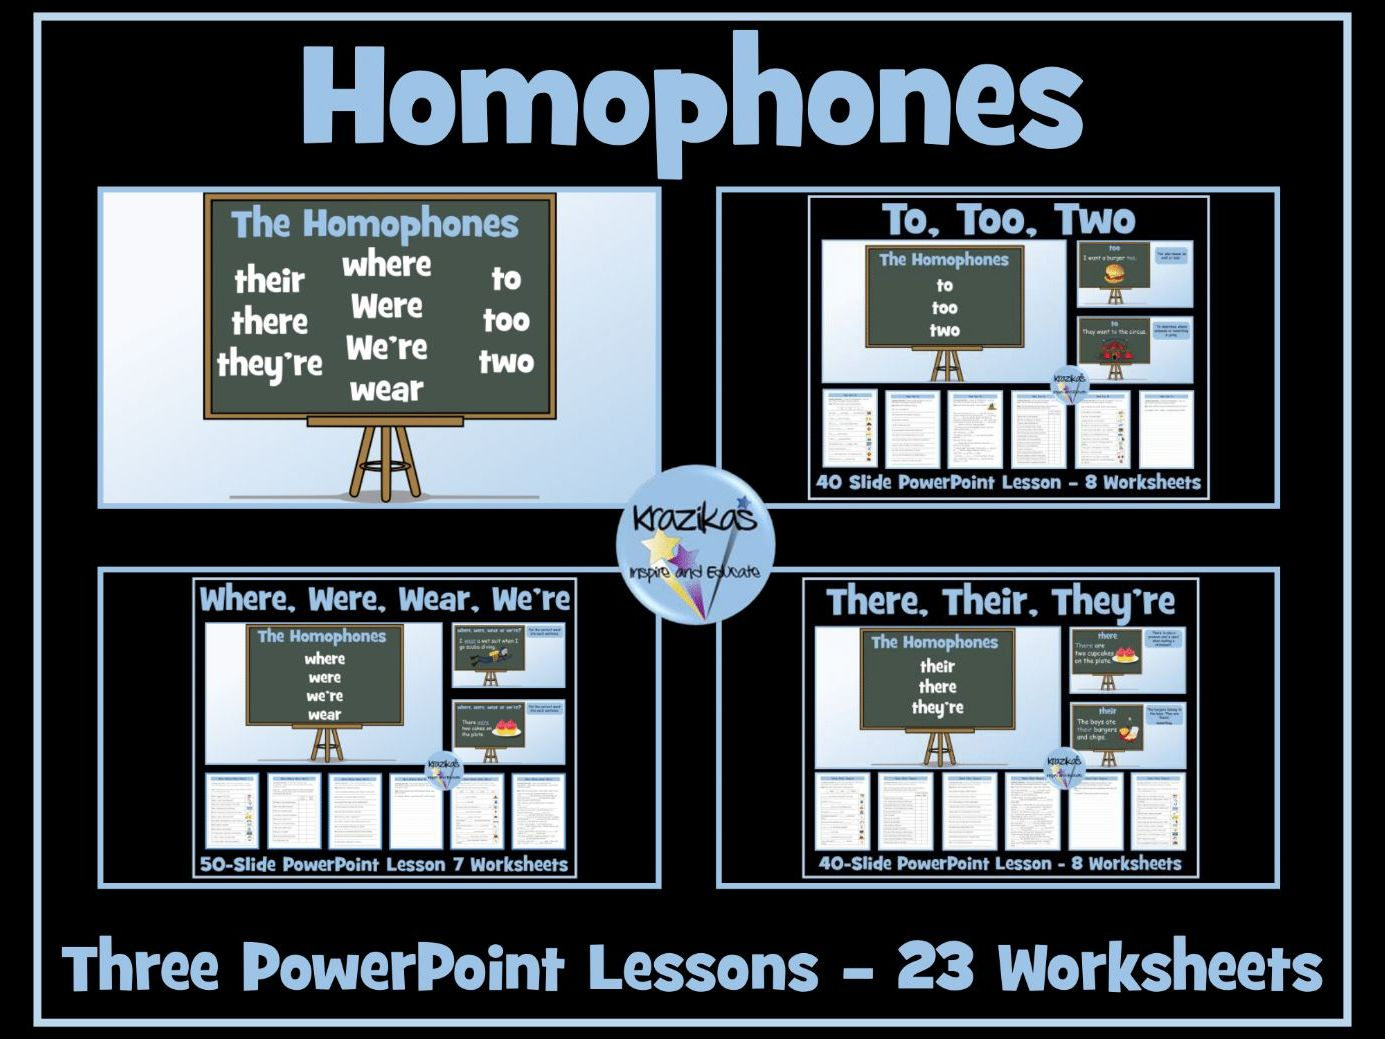 Homophones: Where, Were, Wear, There, They're, Their, Too, Two, To